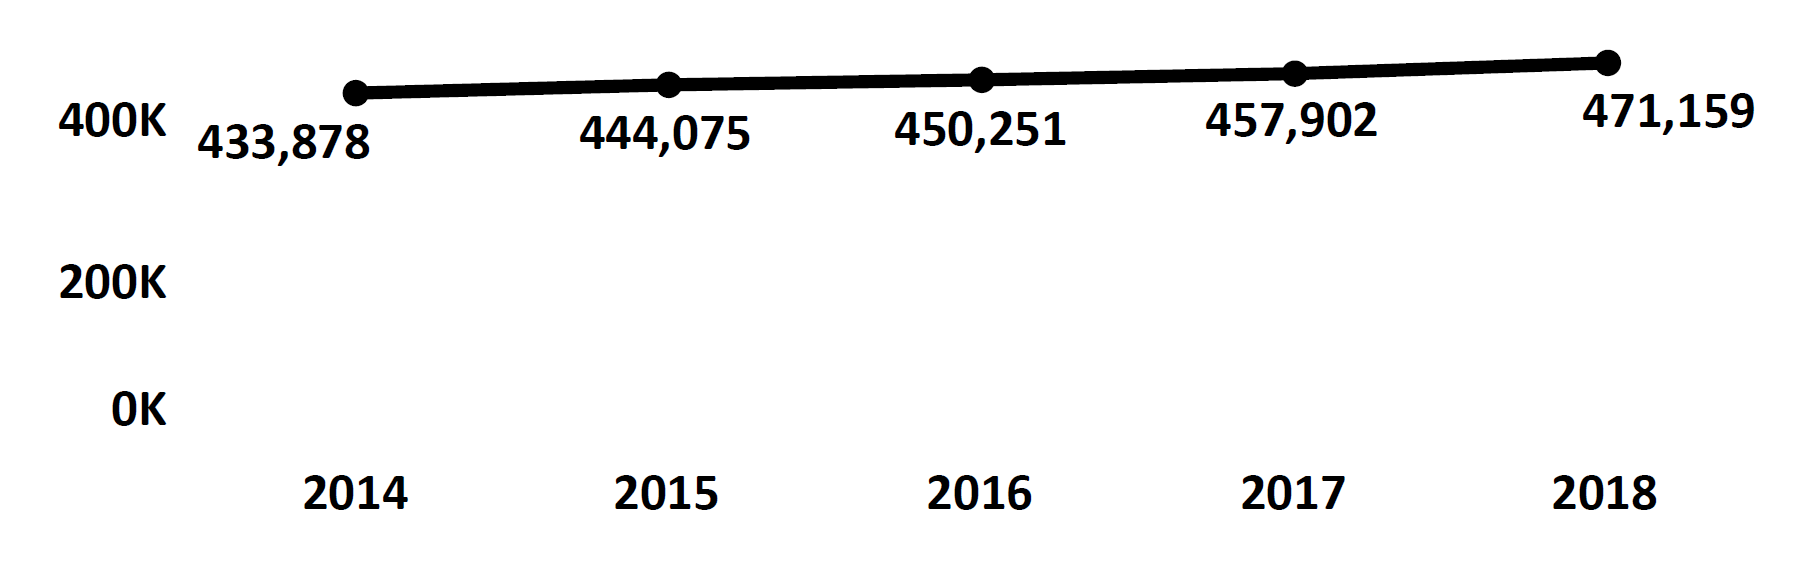 Graph of active Do Not Call registrations in Wyoming each fiscal year from 2014 to 2018. In 2014 there were 433,878 numbers registered, which increased each year. In 2018 there were 471,159 numbers registered.